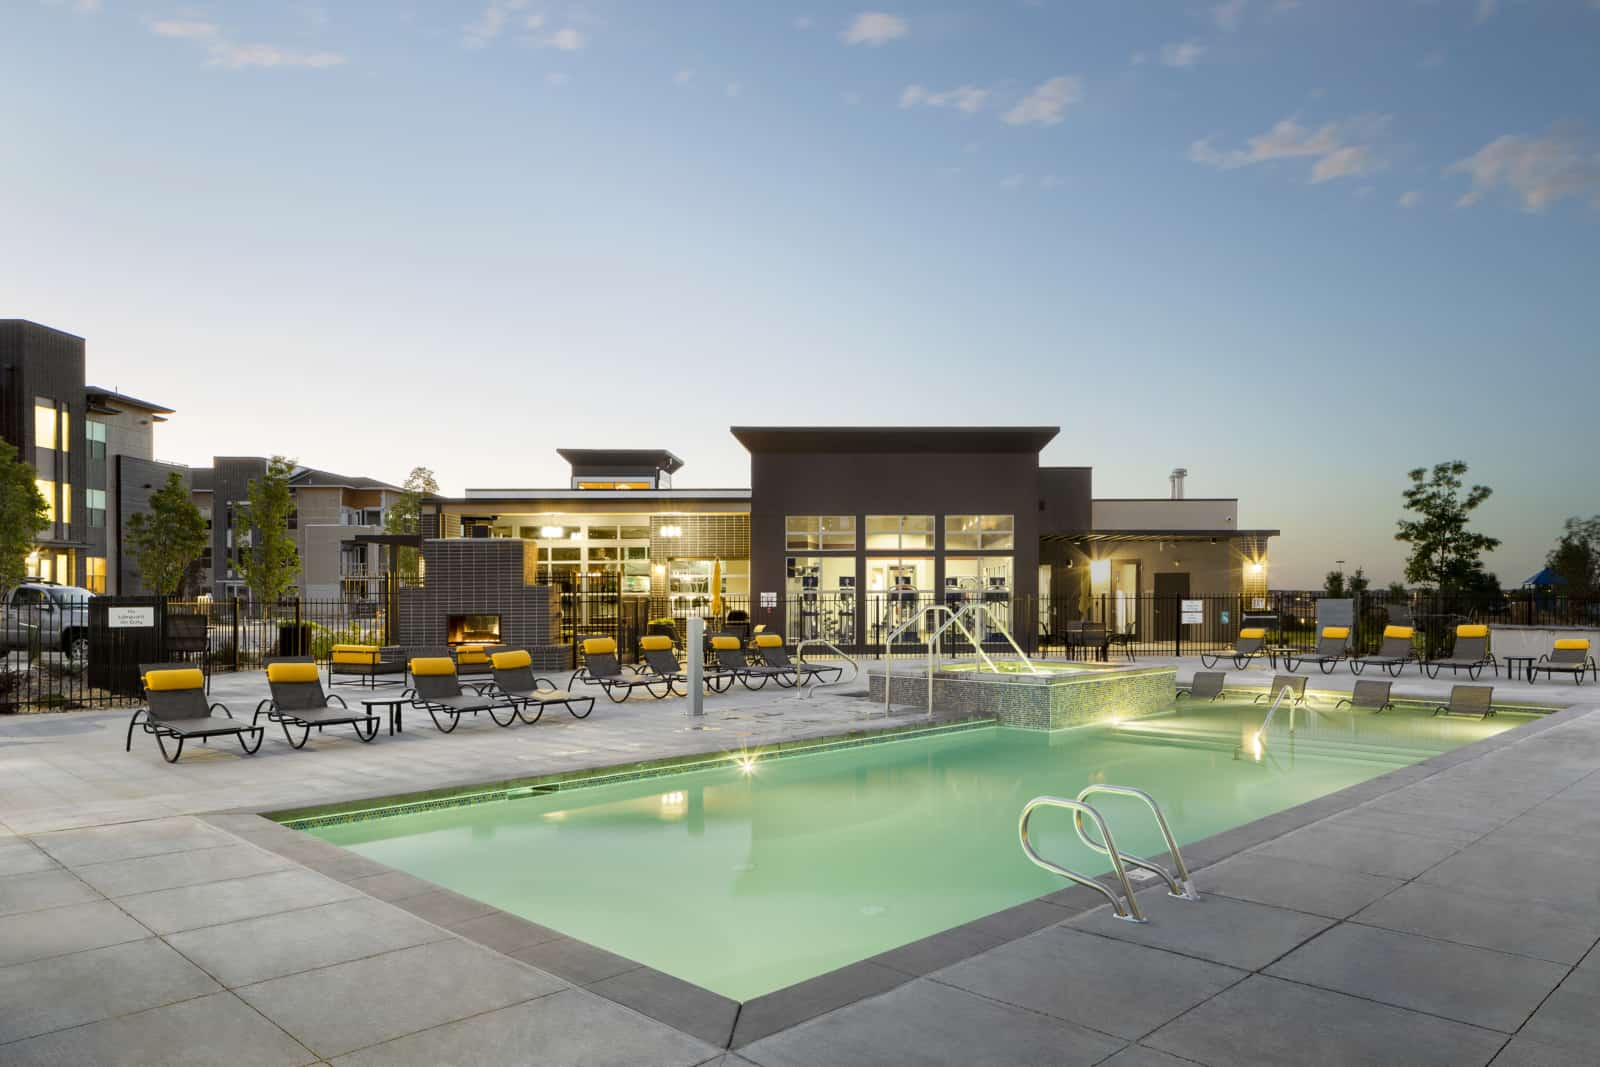 Exterior of pool with lounge chairs, outdoor fireplace and apartment building in background.